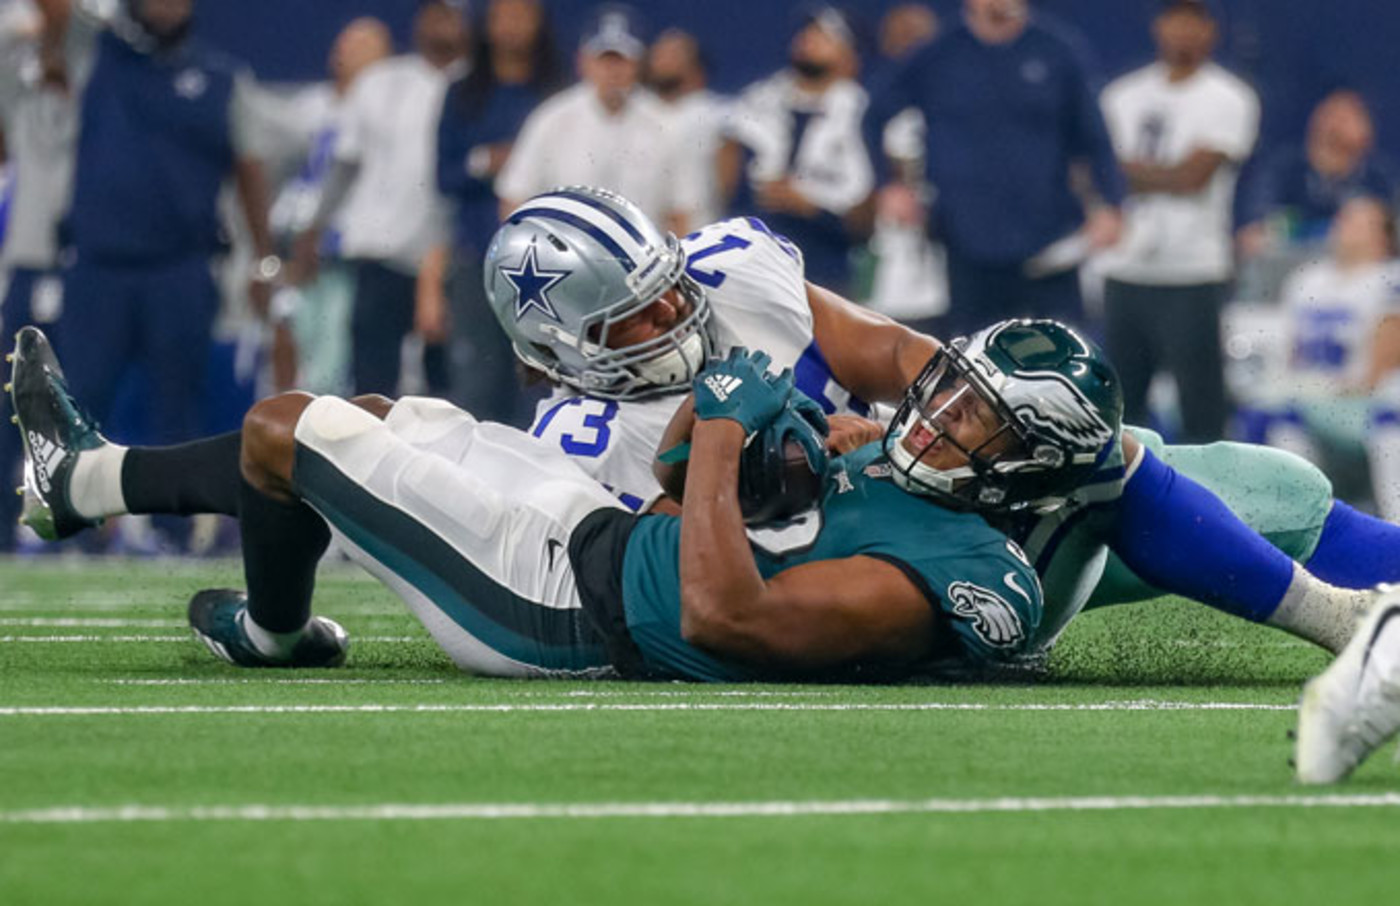 The Eagles and Cowboys play on December 9, 2018